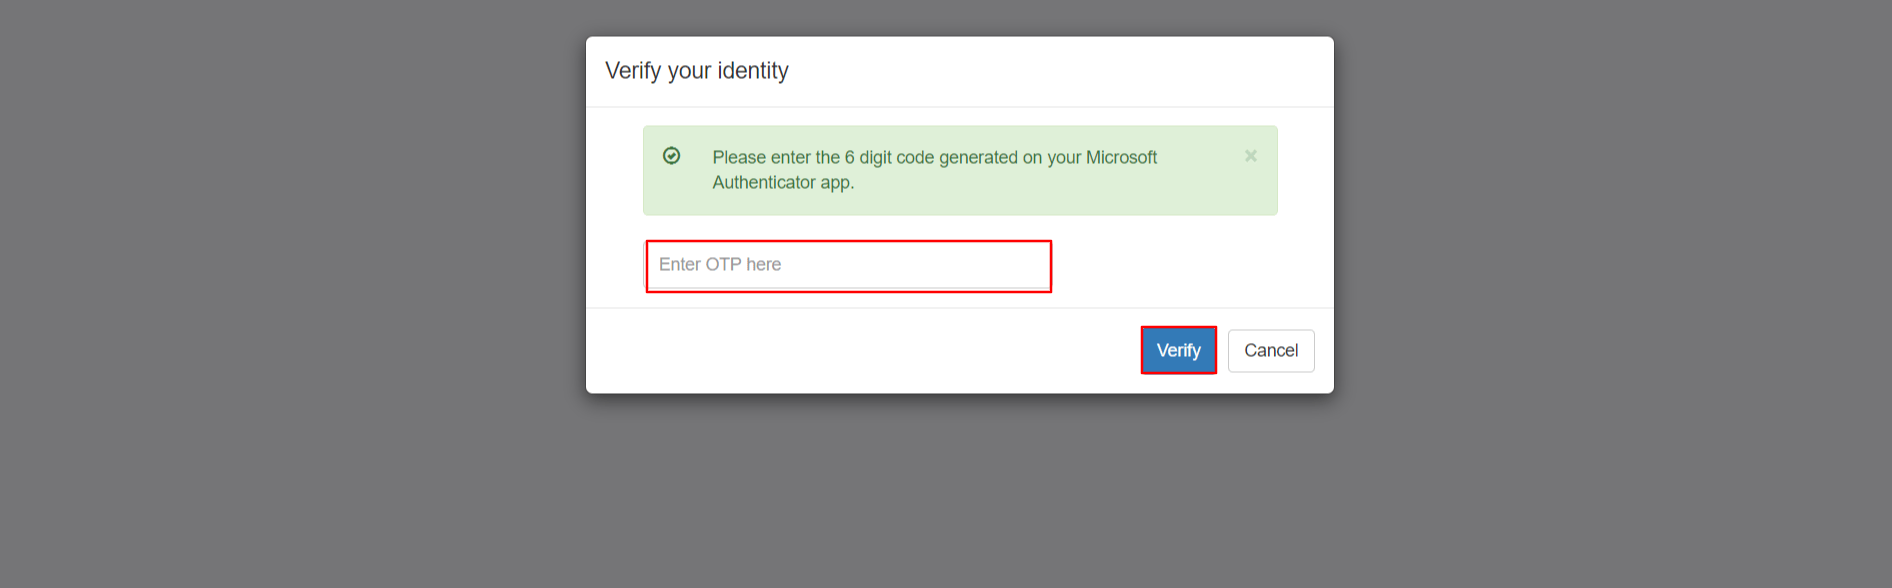 Enter OTP generated from Microsoft Authenticator